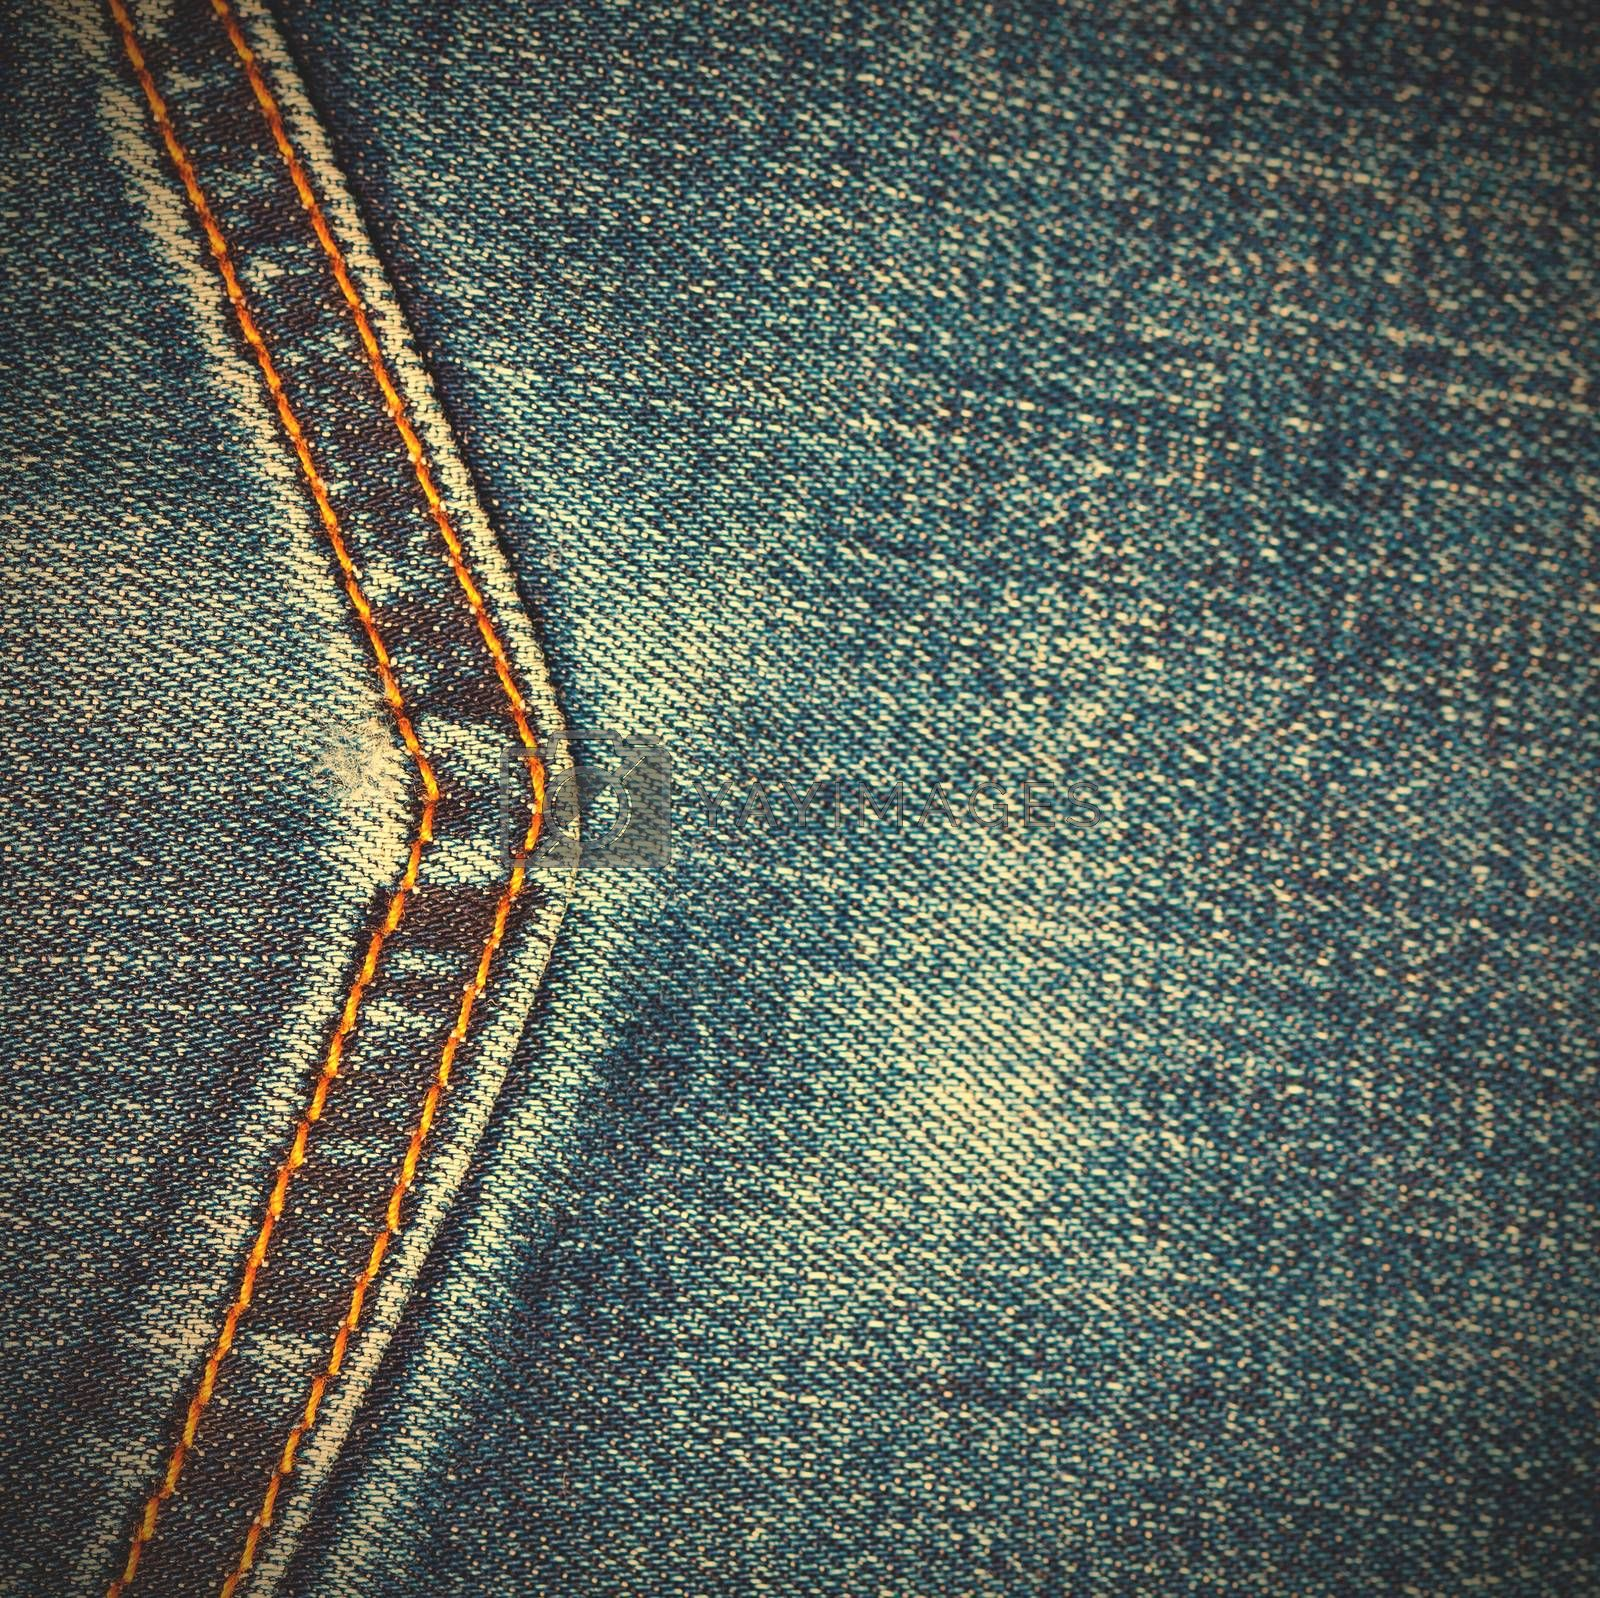 Royalty free image of jeans background with seam by Astroid